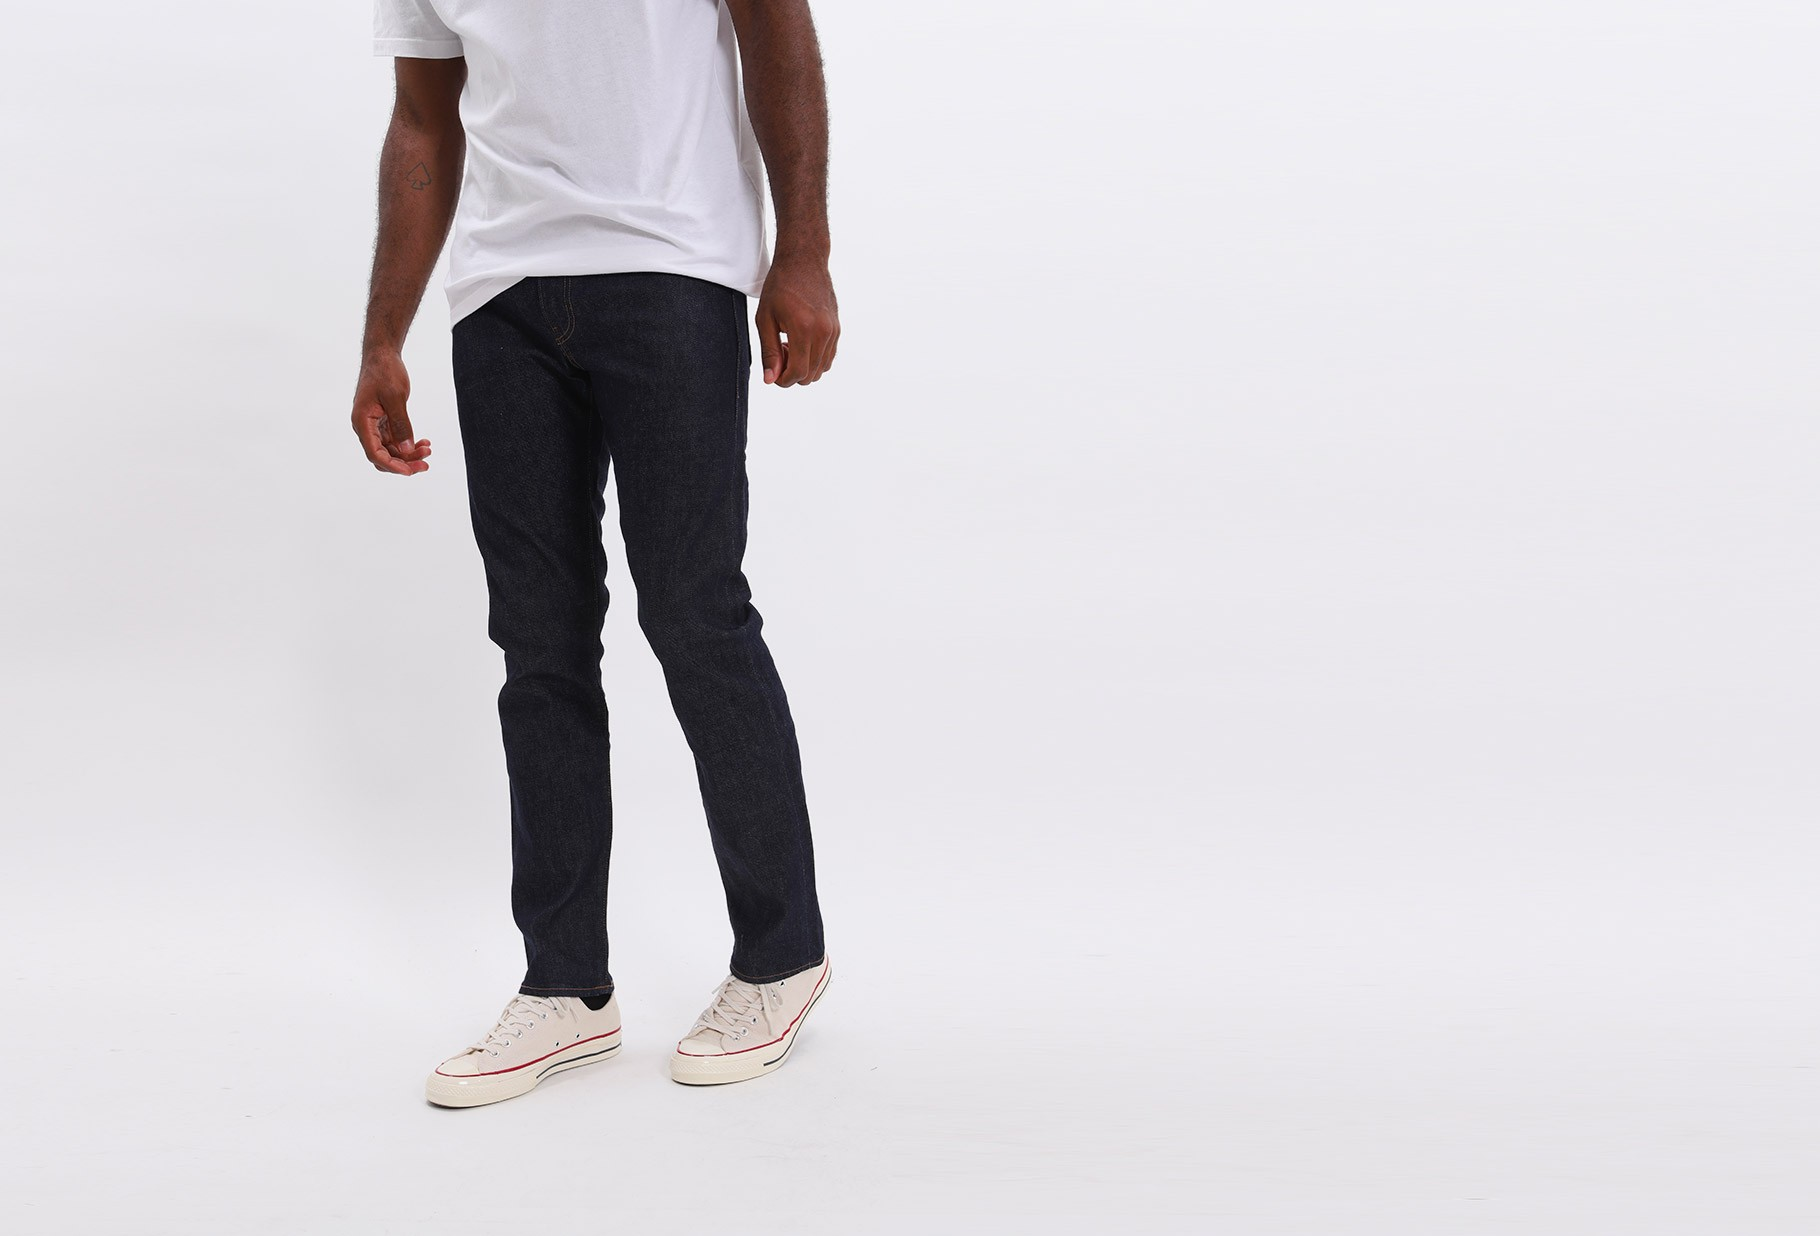 LEVIS MADE CRAFTED / Lmc 511 lmc Resin rinsed